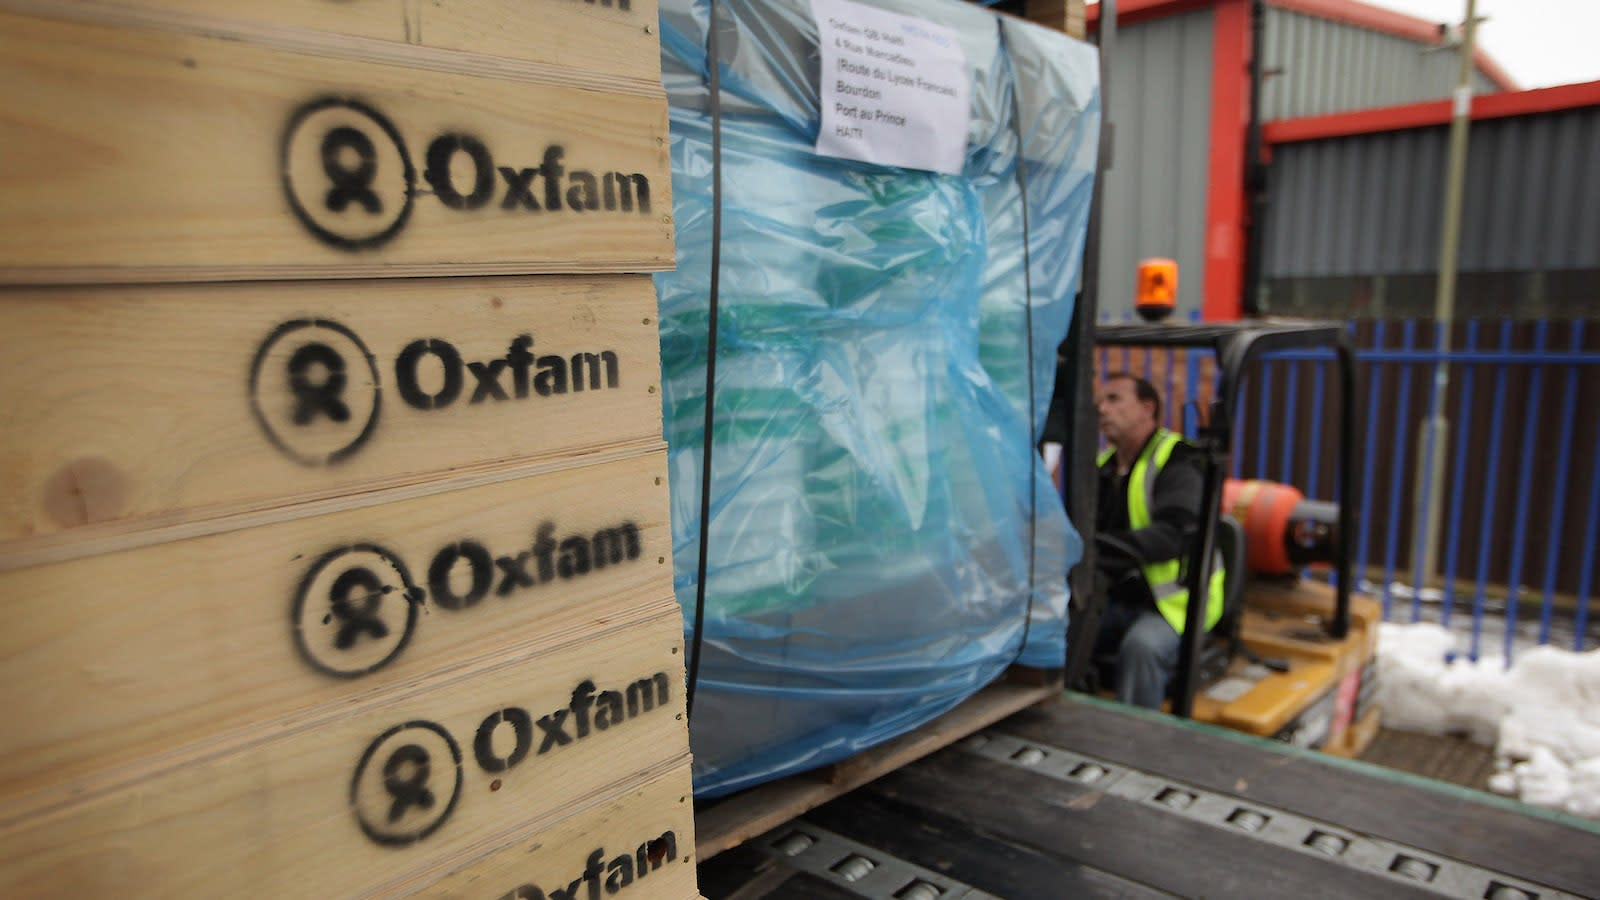 pwvl8xe8wqz3s7dfdzmu - Report: Oxfam Hid 2011 Sexual Misconduct Scandal to Protect the Charity's Reputation